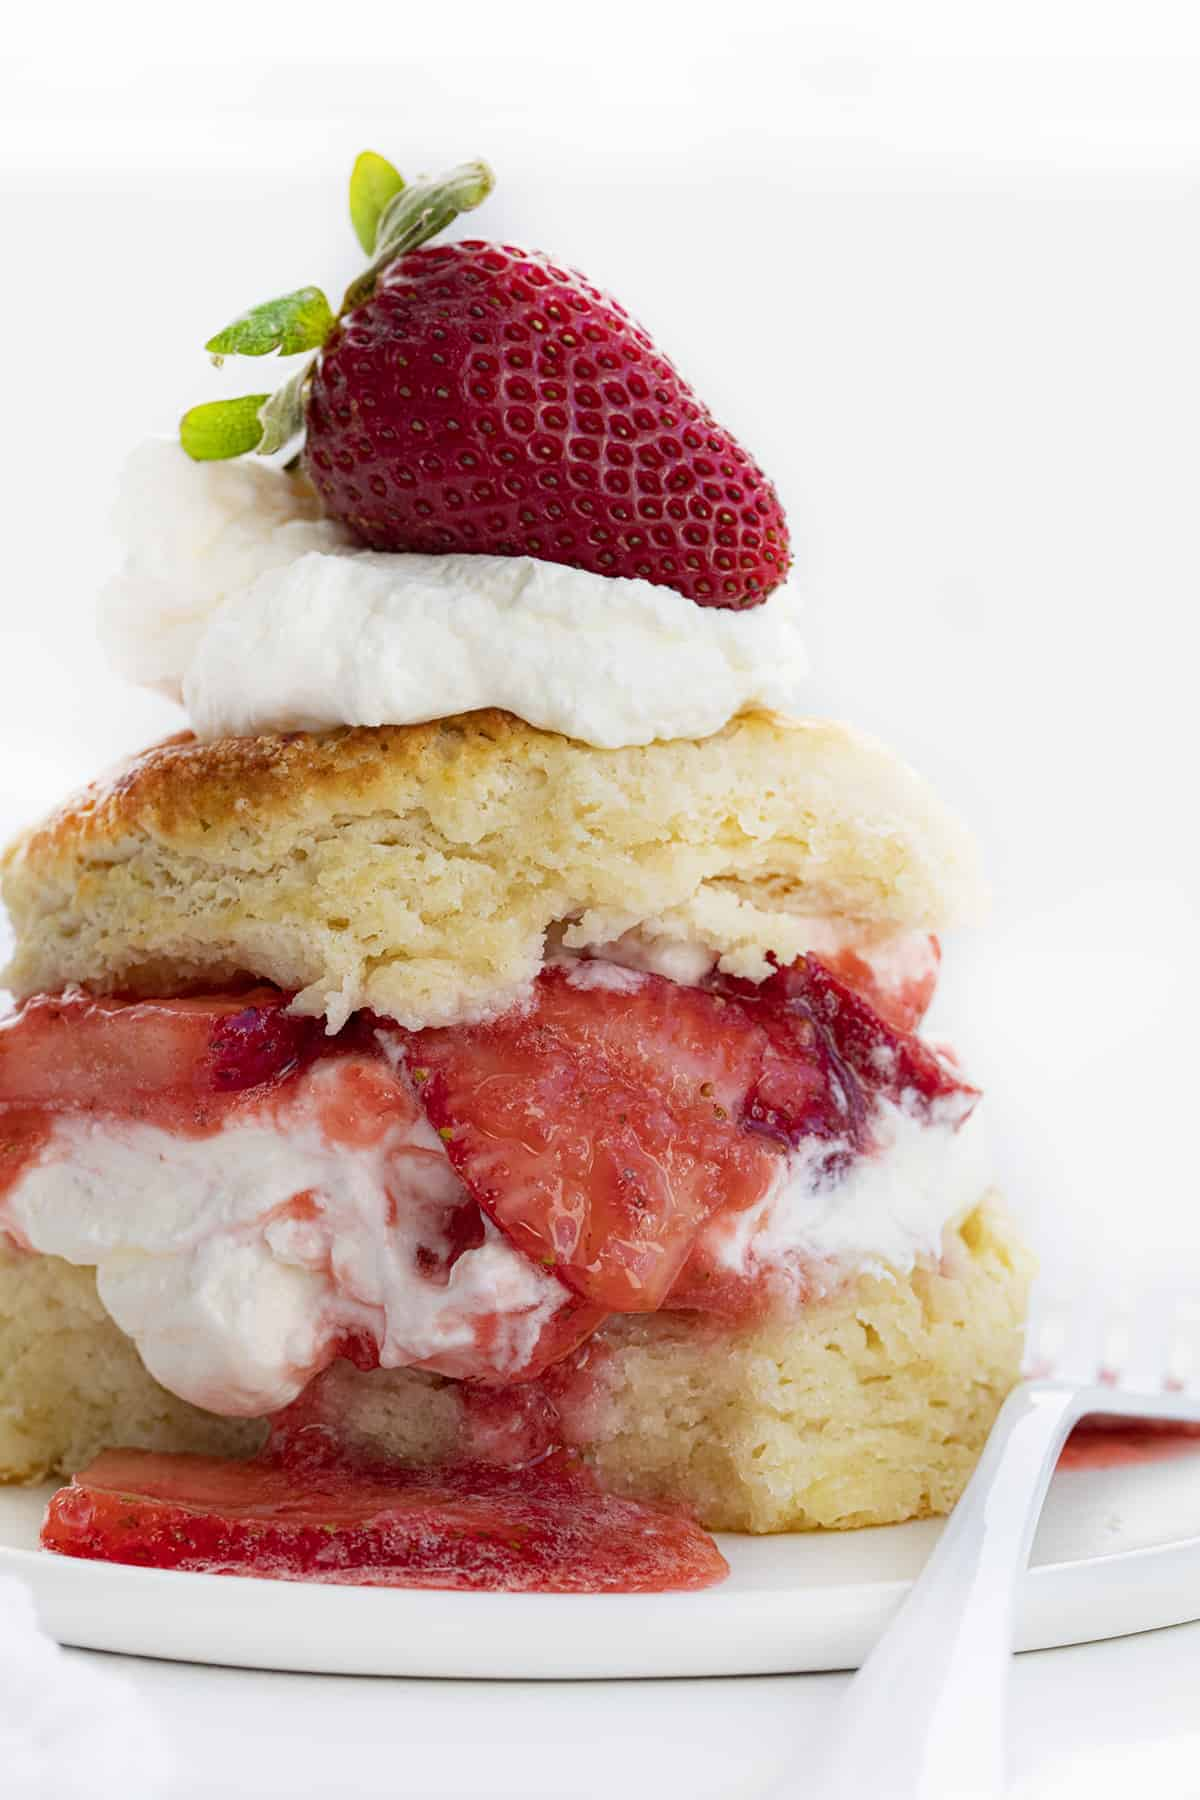 Real Strawberry Shortcake Stacked High with Strawberry on Top